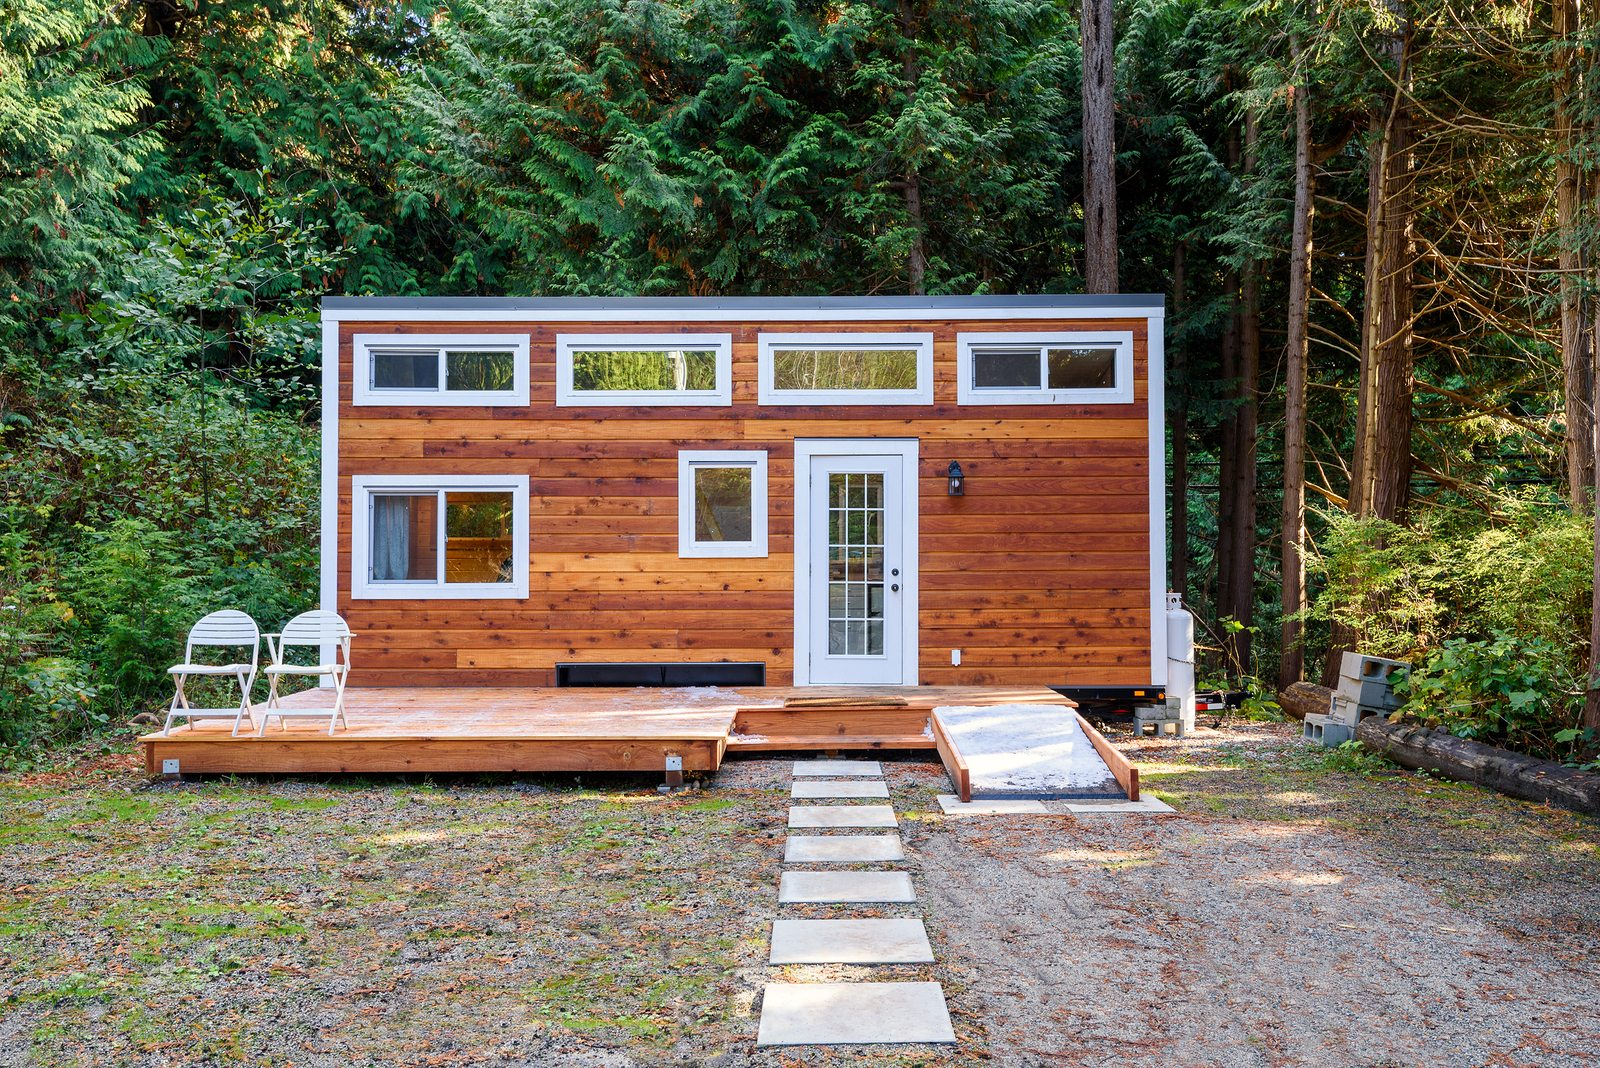 Redfin Identifies the Most Desirable Tiny Homes on the Market